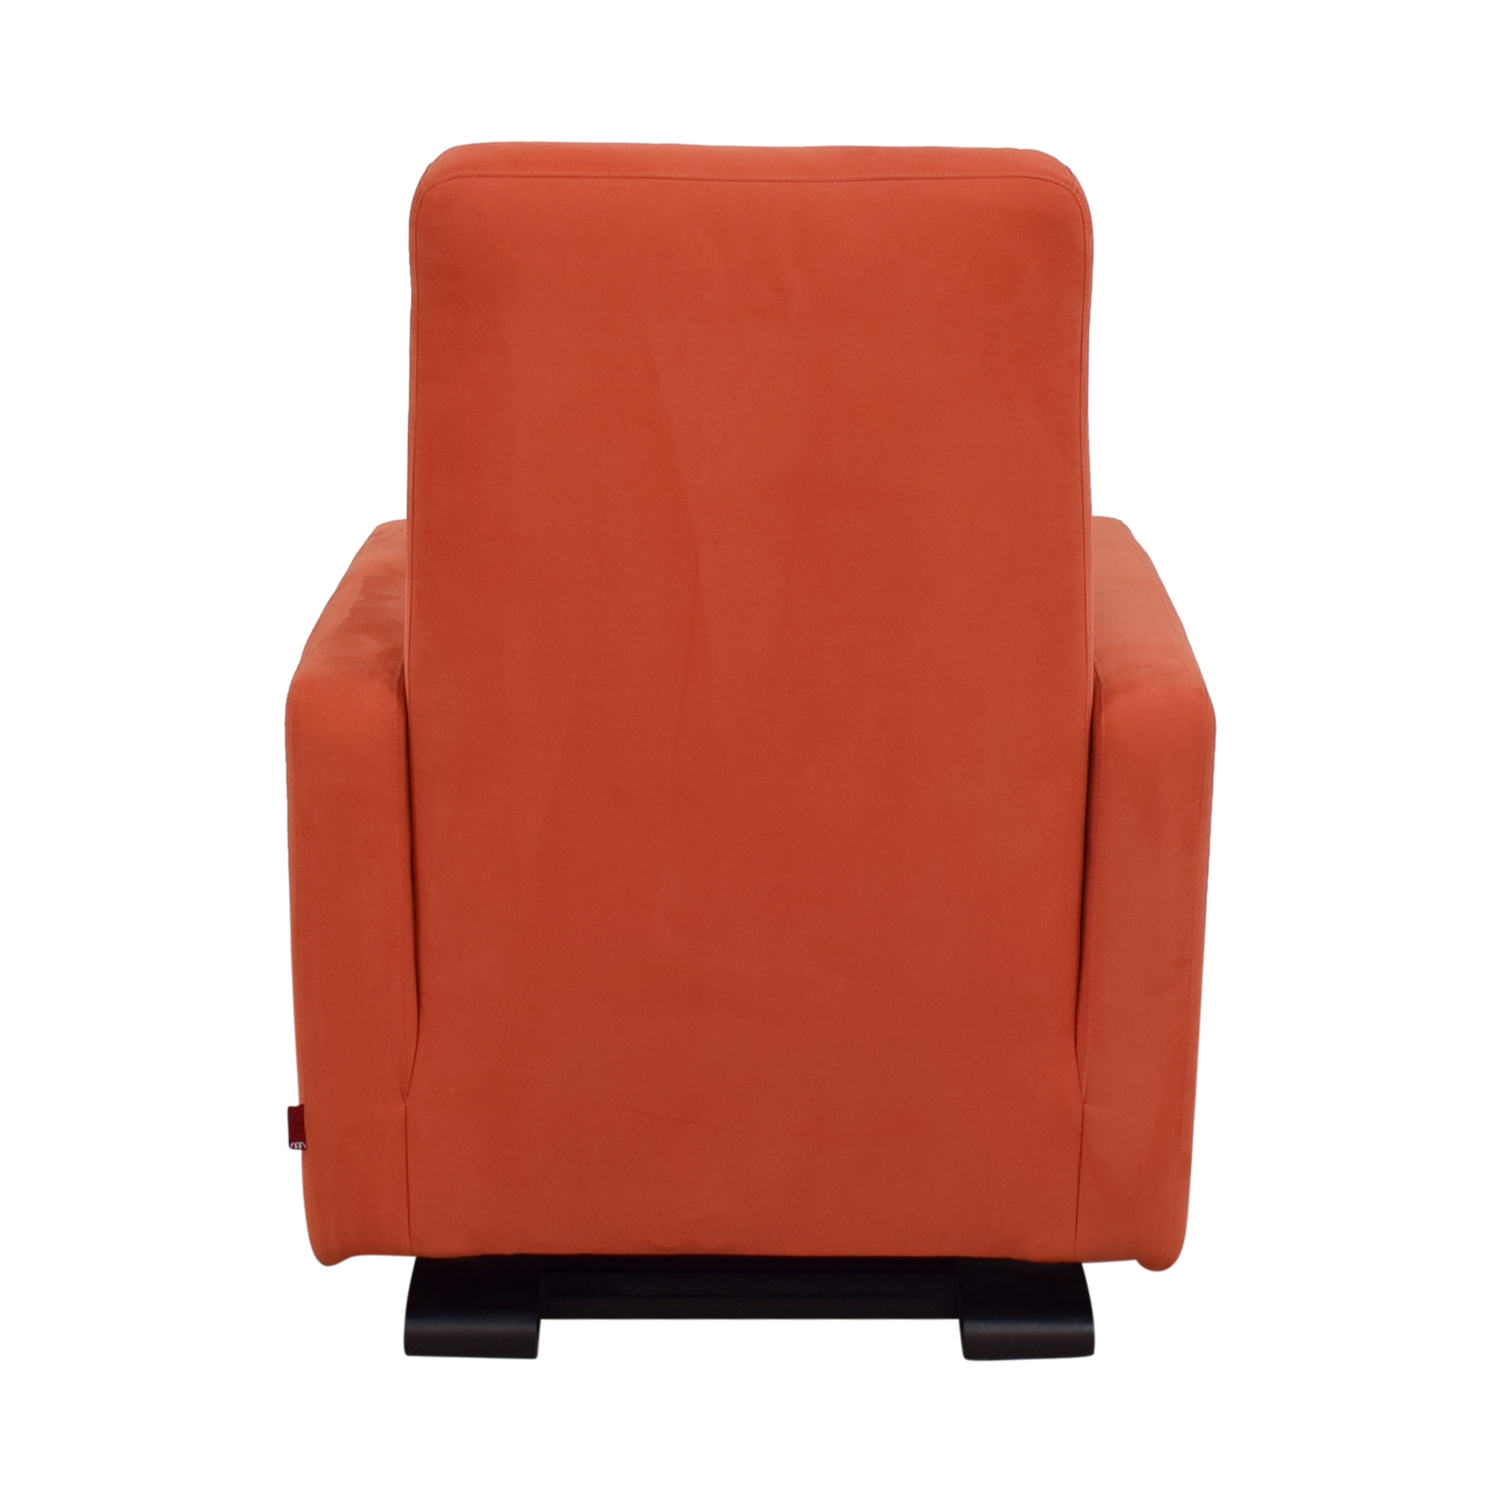 Monte Design Monte Design Orange Nursery Recliner Glider Recliners